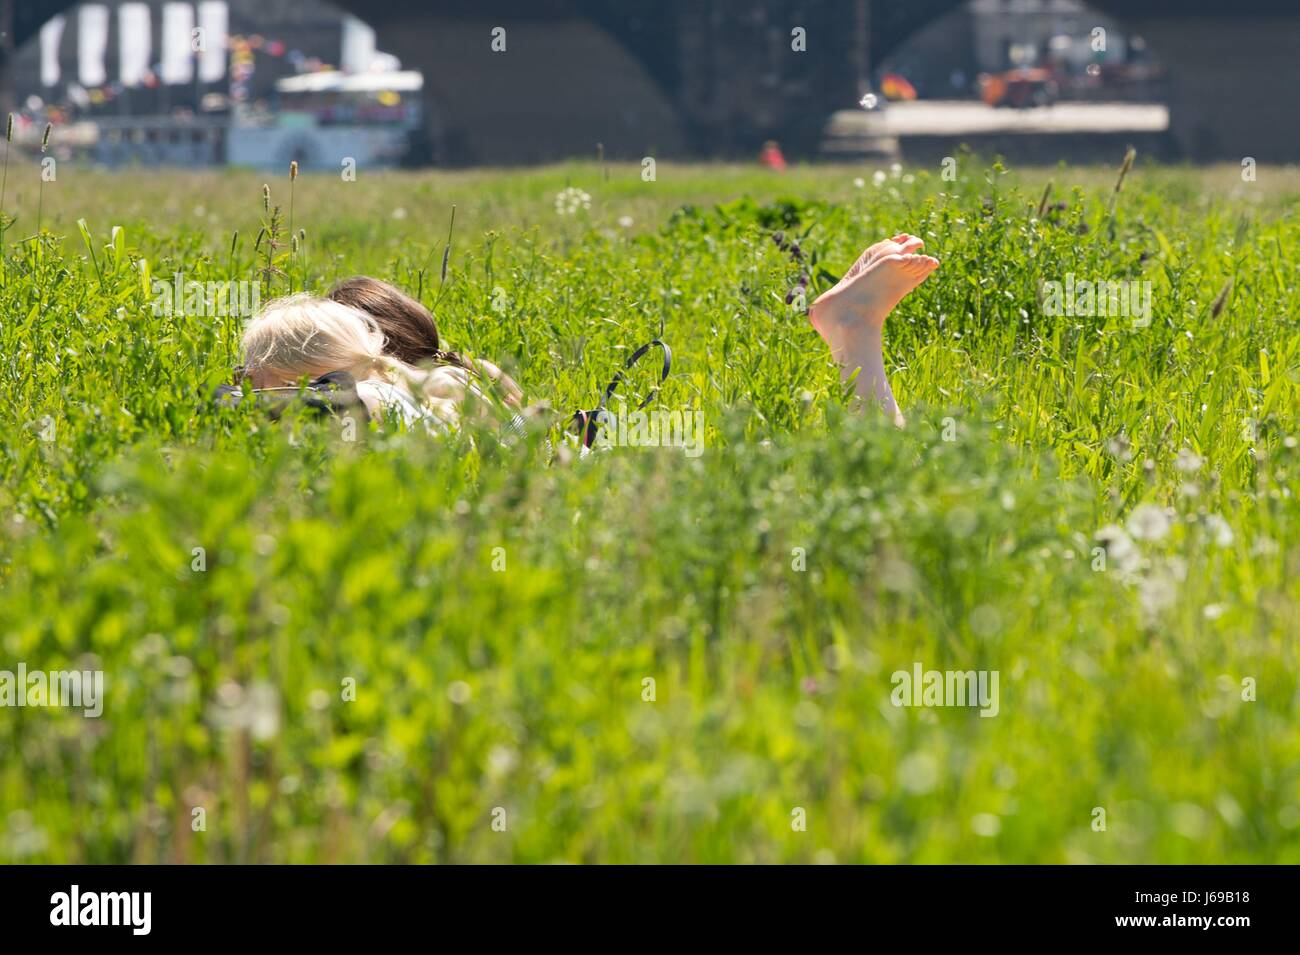 Dresden, Germany. 18th May, 2017. Two women enjoy the sun on a meadow by the Elbe river in Dresden, Germany, 18 - Stock Image